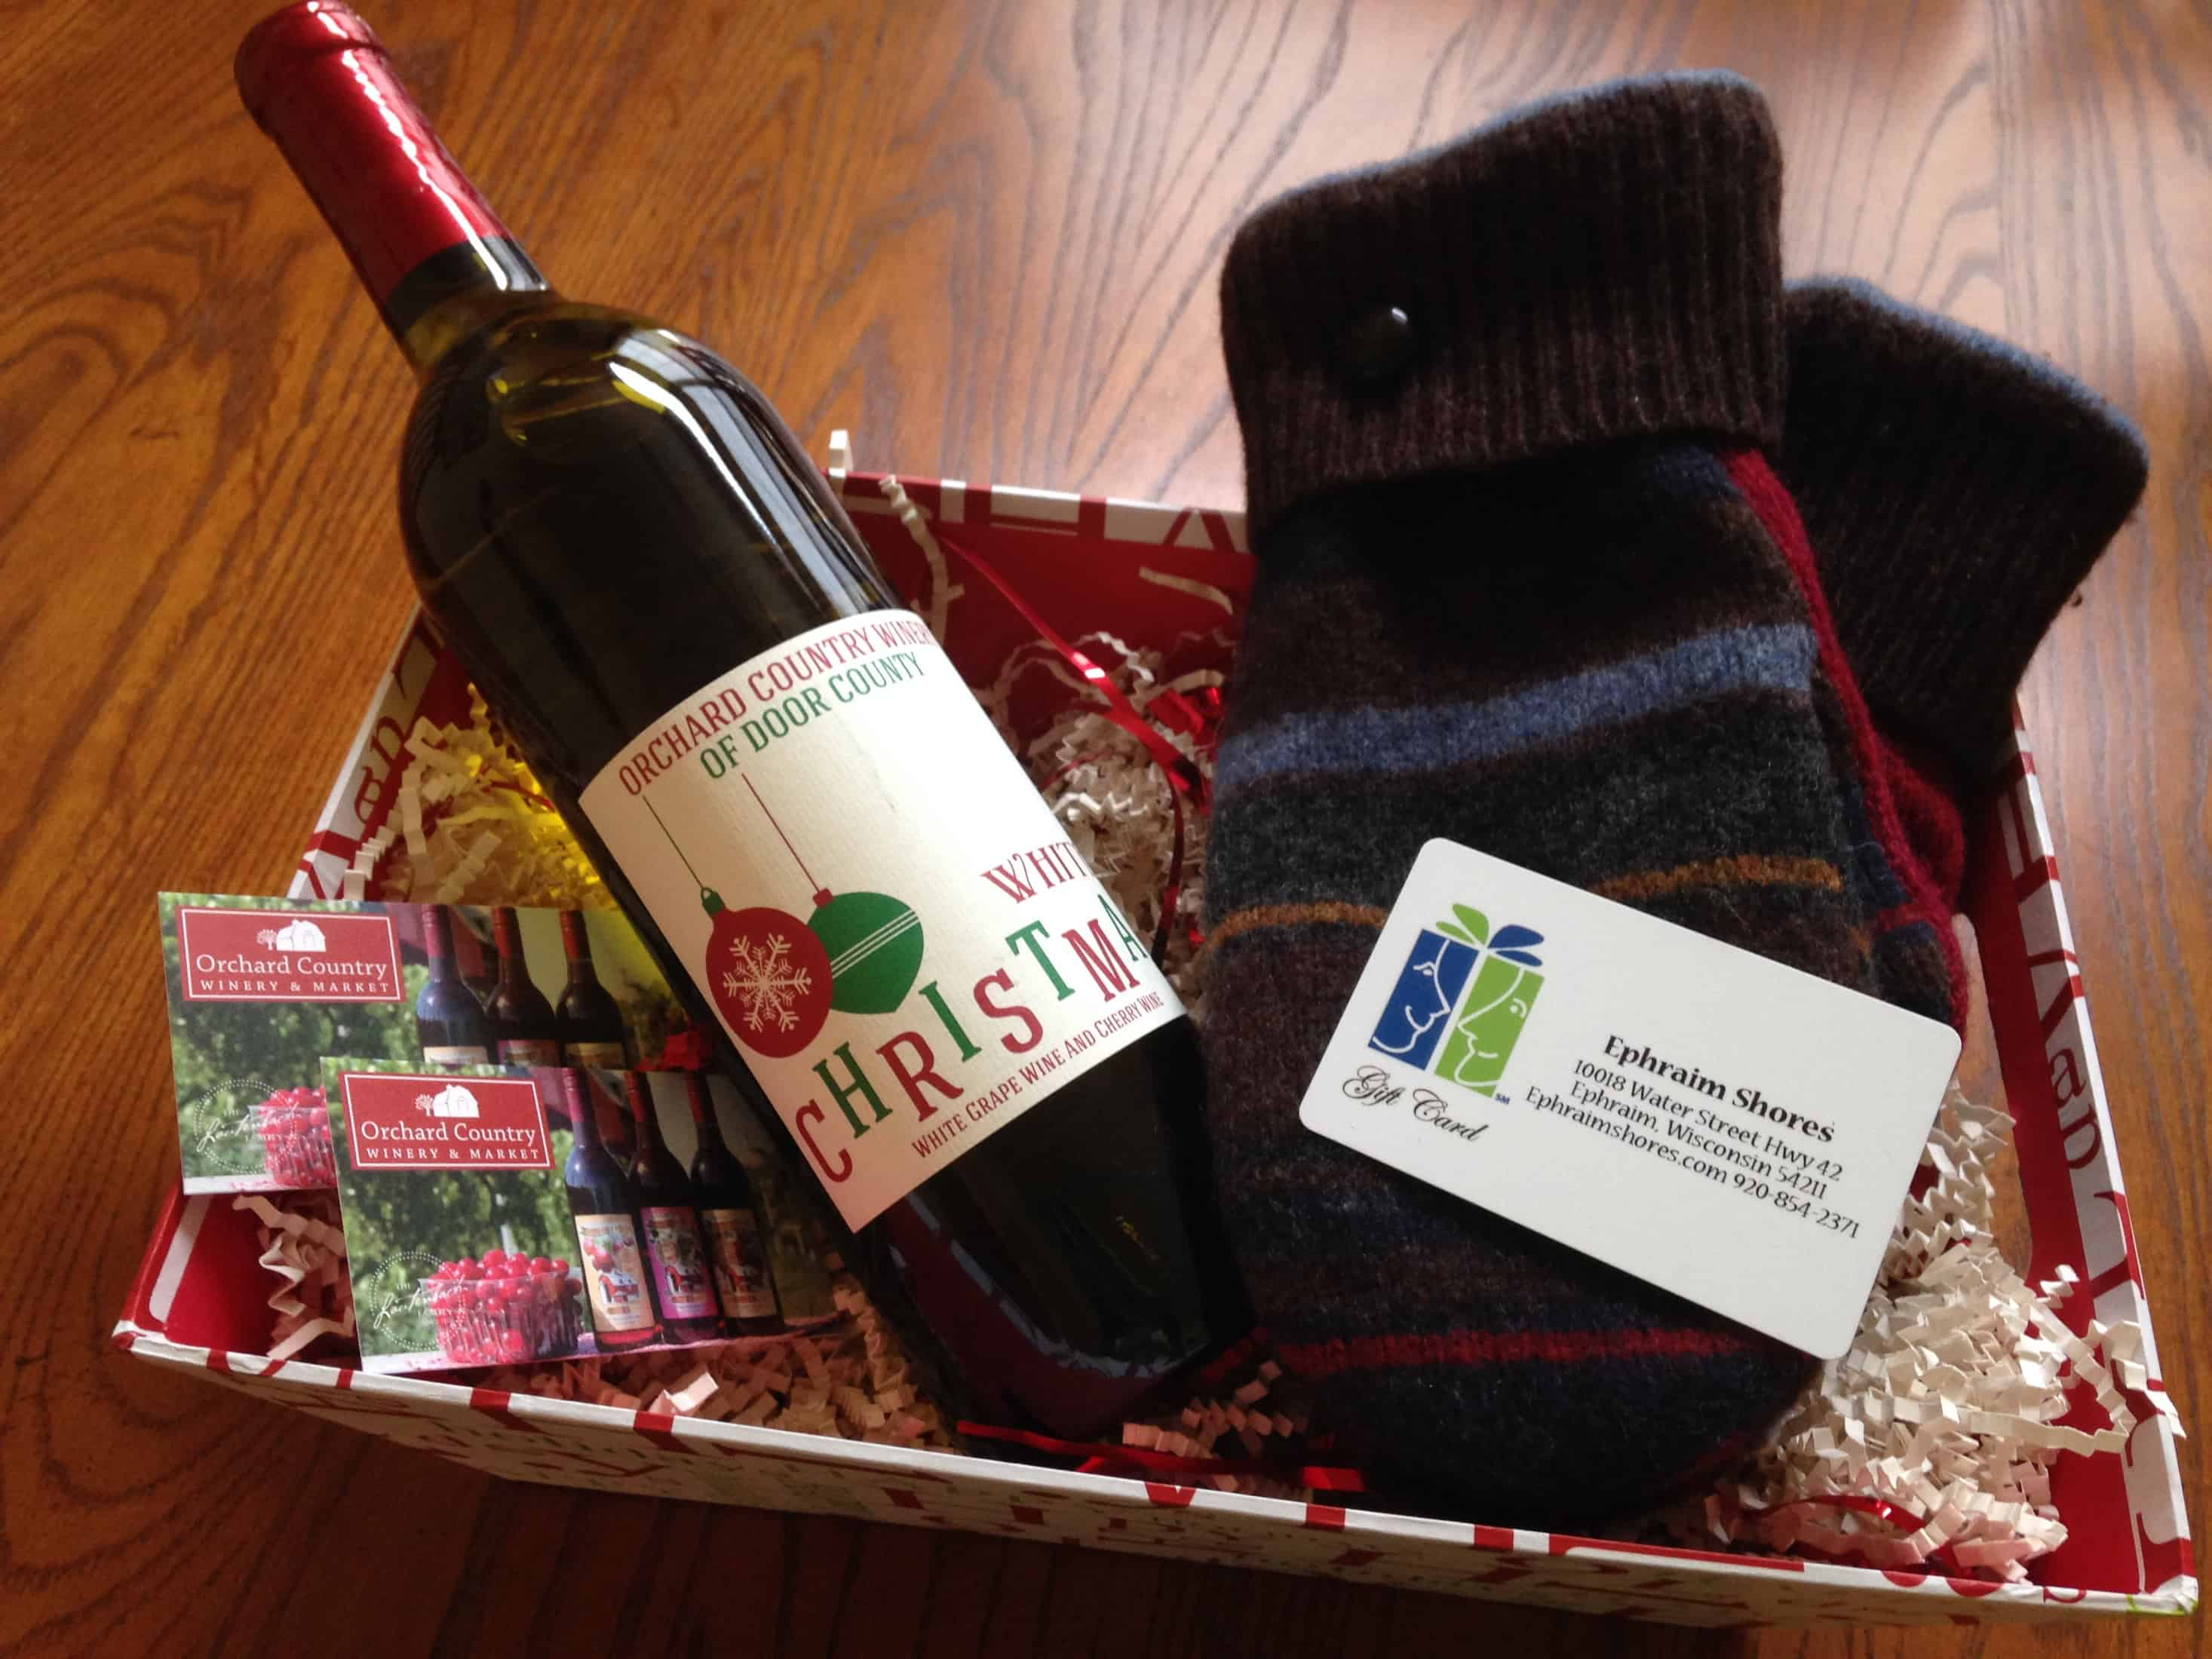 A gift basket will include two wine tour tickets, a $25 gift card for Ephraim Shores, White Christmas wine and wool mittens.